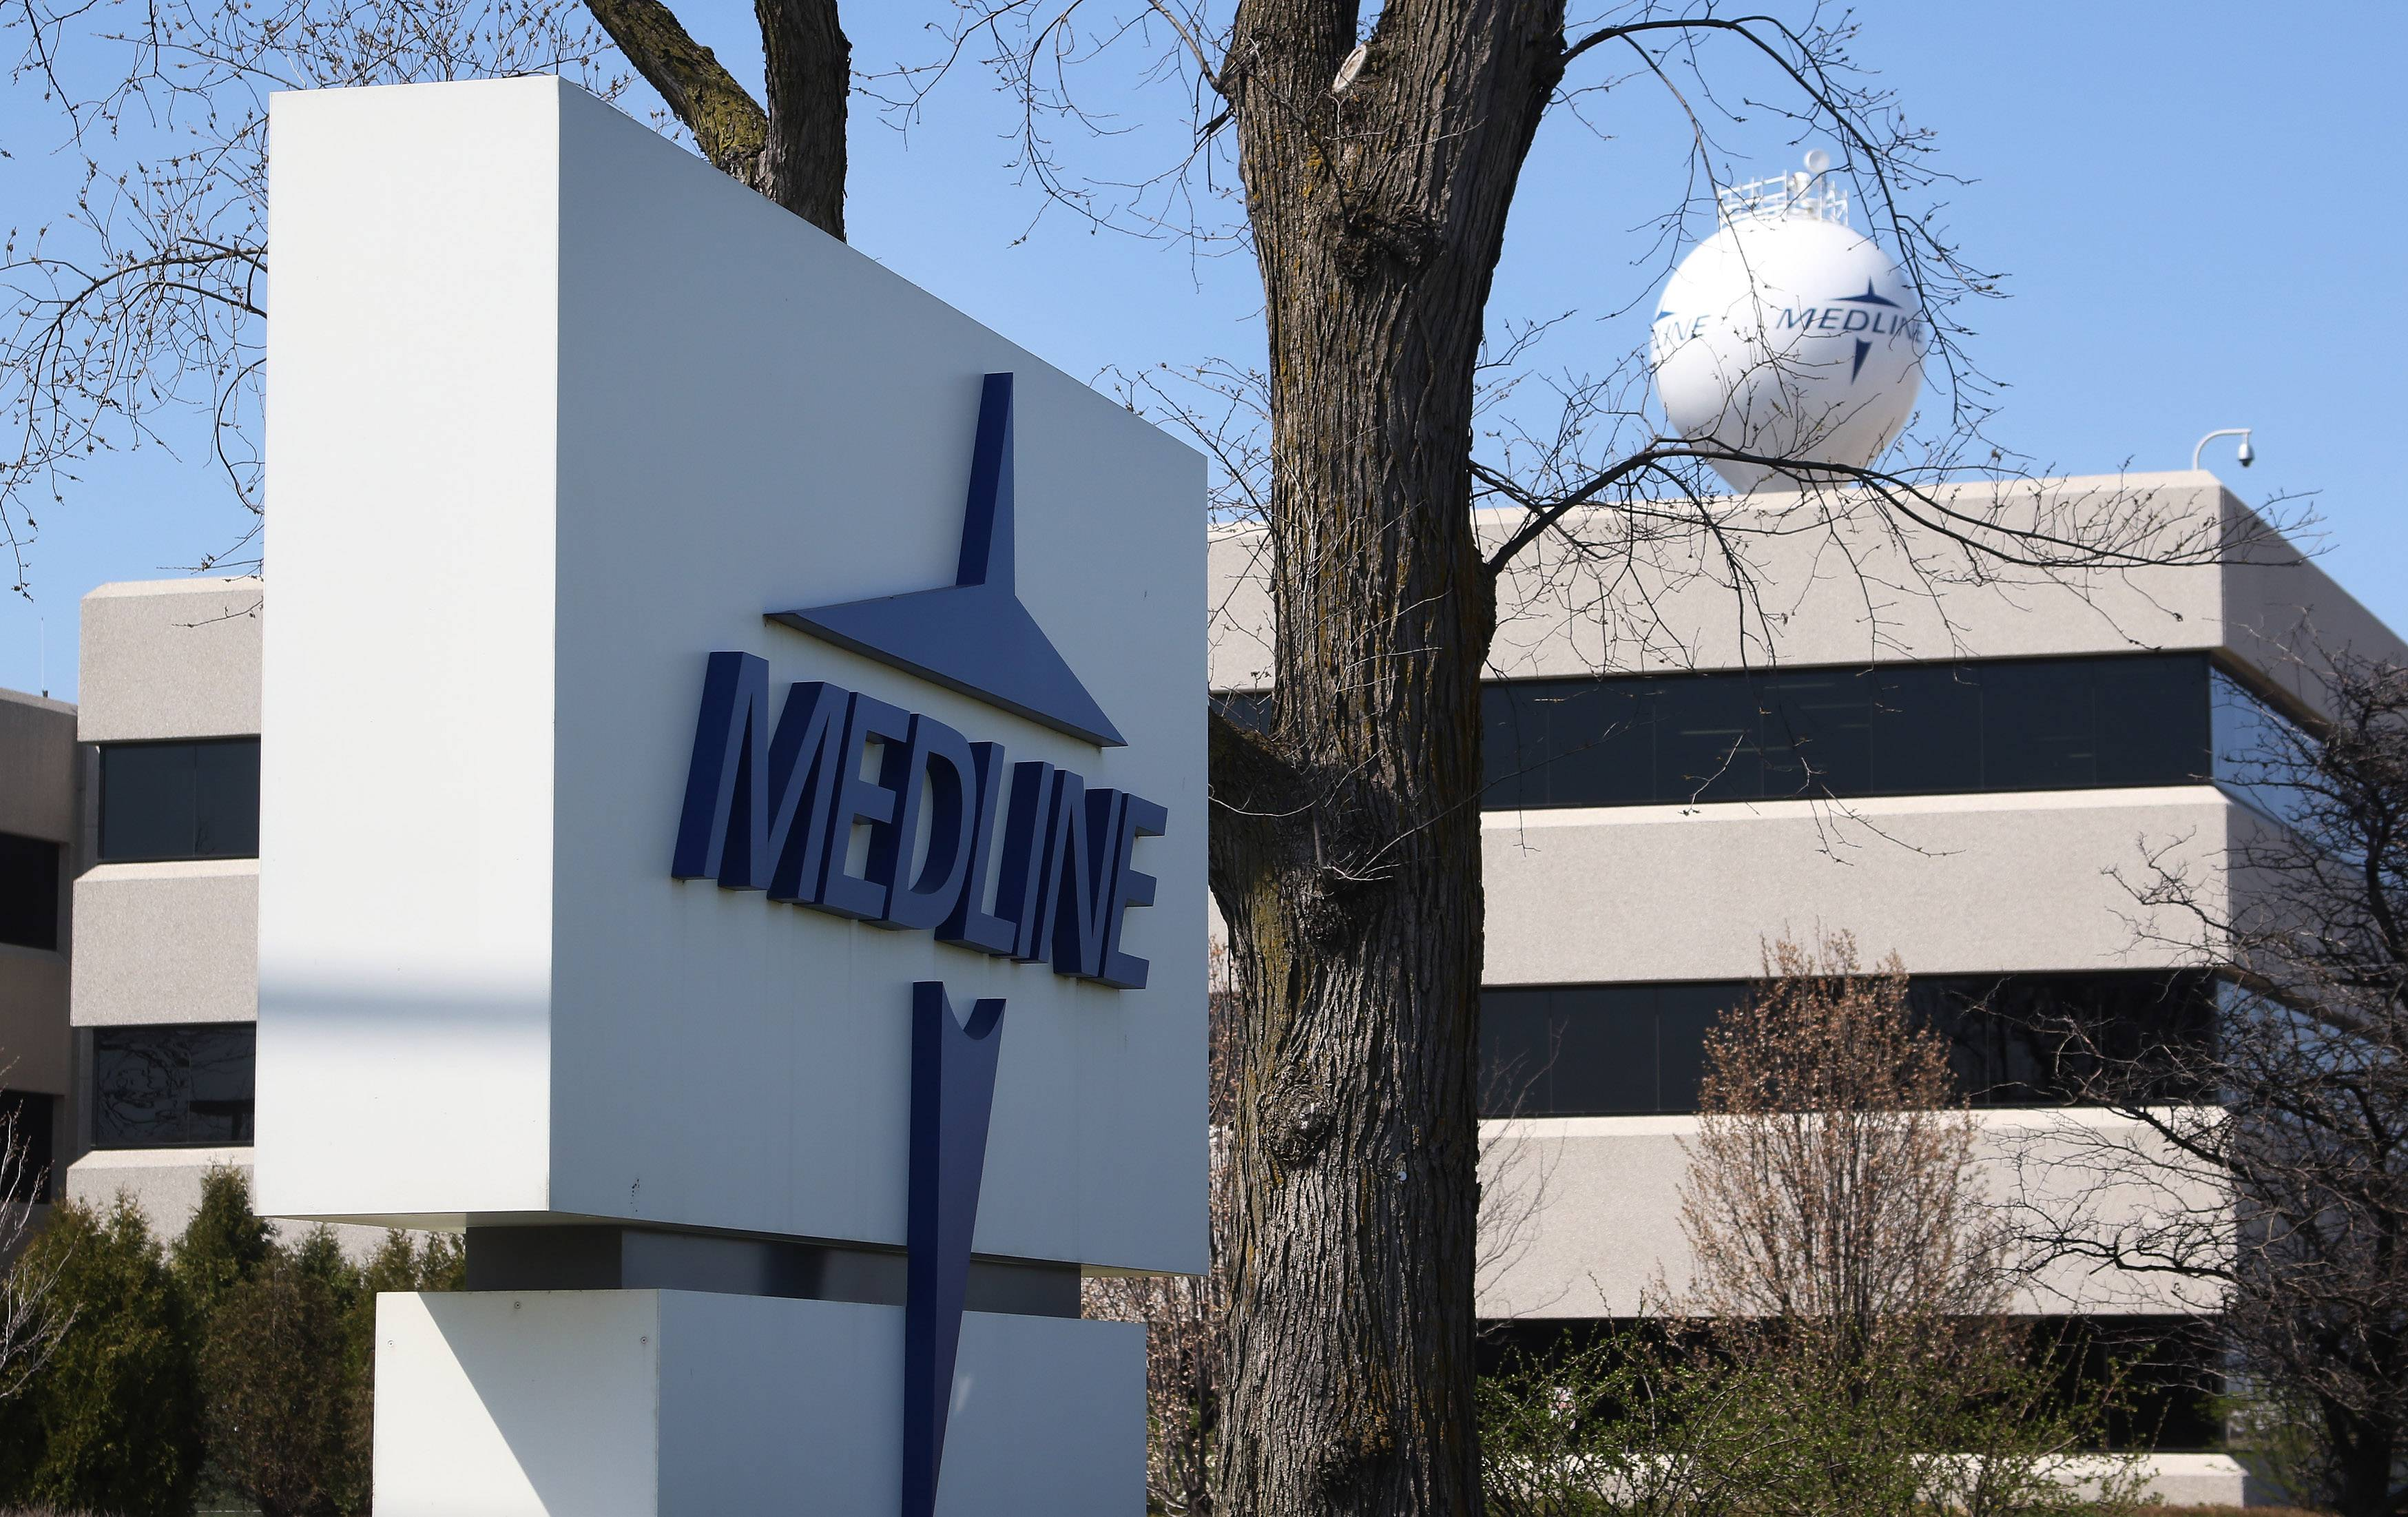 Medline, with operations in Mundelein, said it will buy Centurion Medical Products, a Michigan-based medical supplies manufacturer.